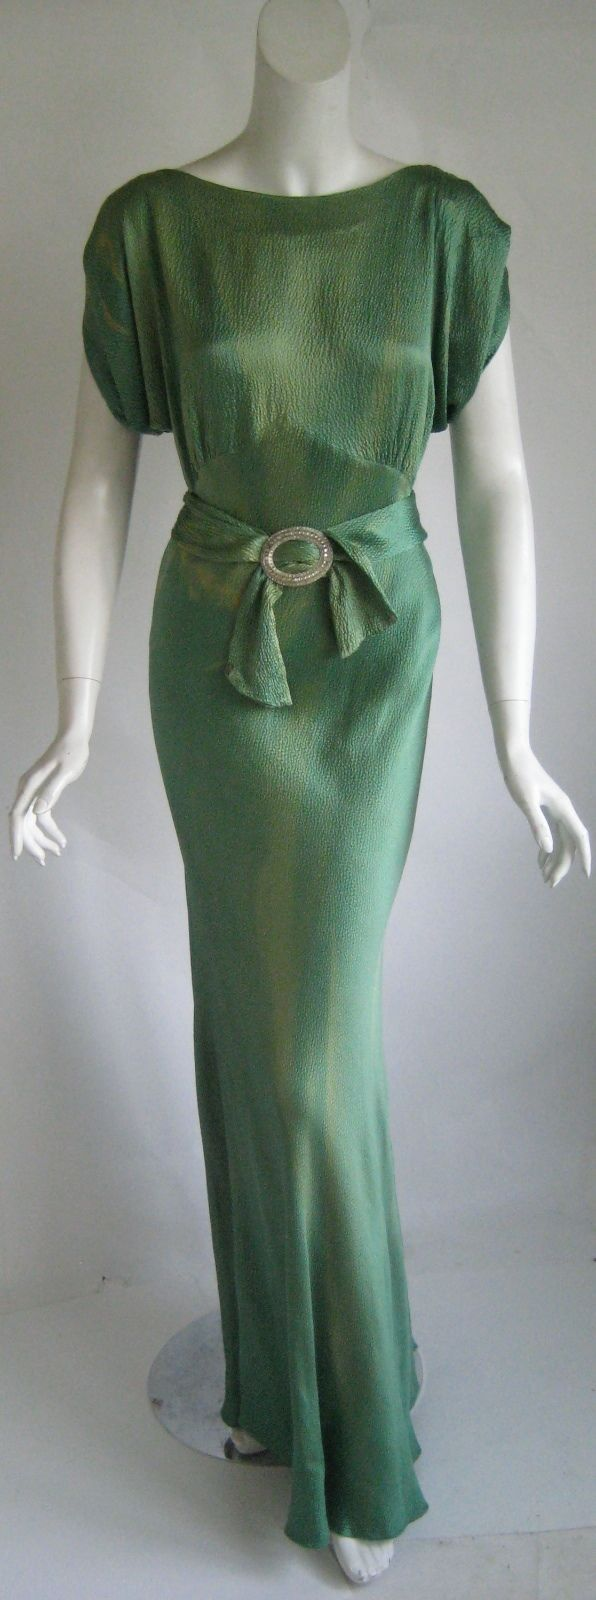 vintage 1930s art deco numbered screen star bias cut silk goddess evening gown(150)